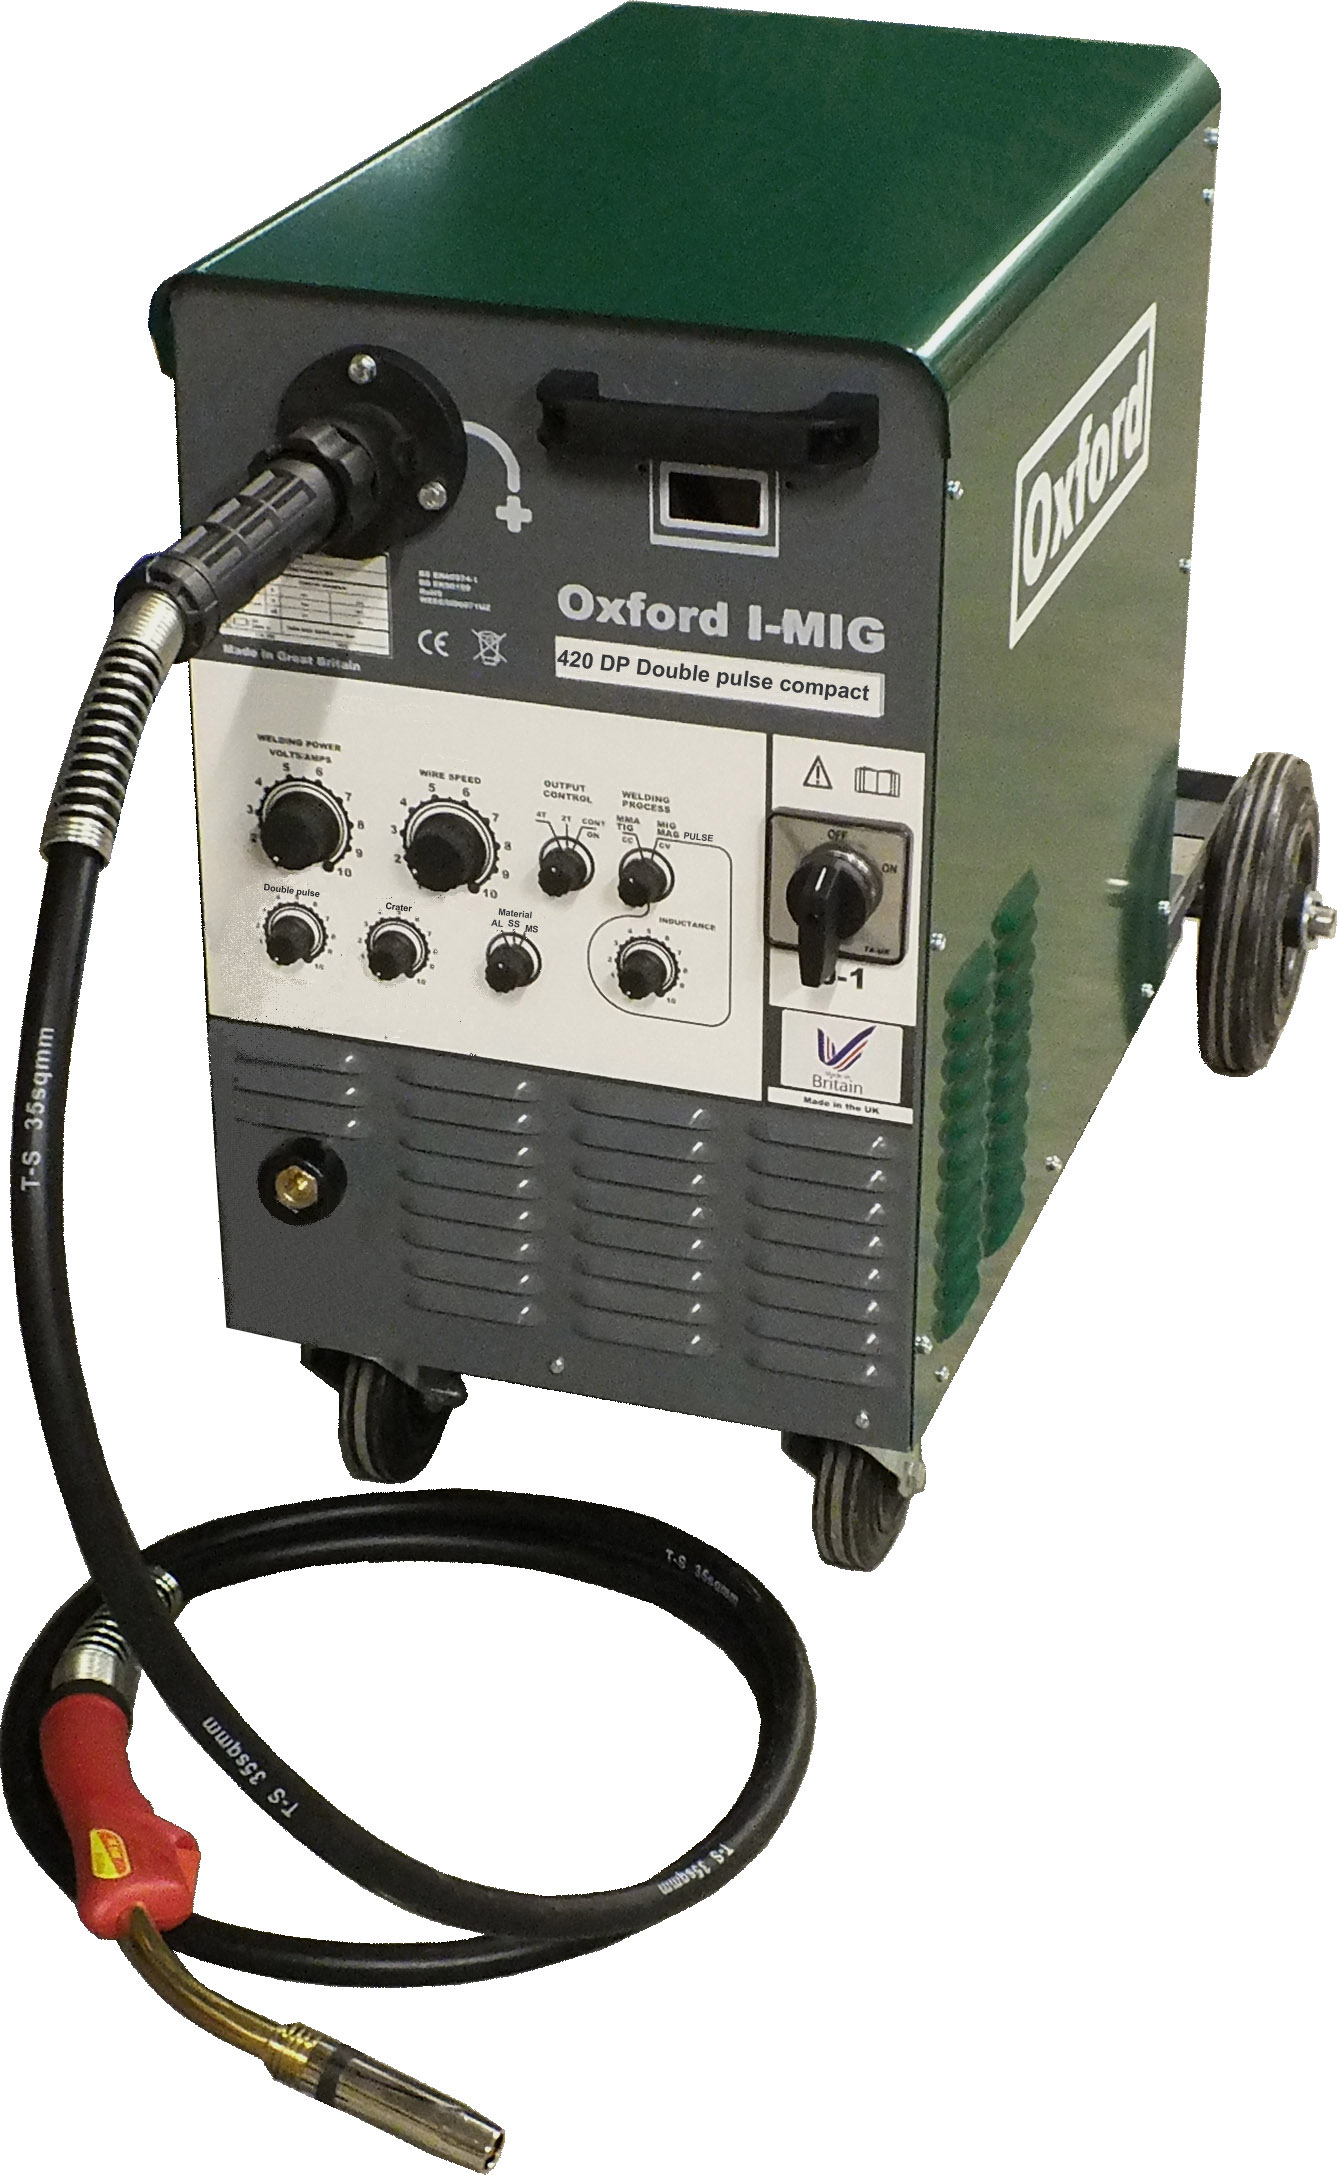 Oxford I-MIG 270 DP dual voltage